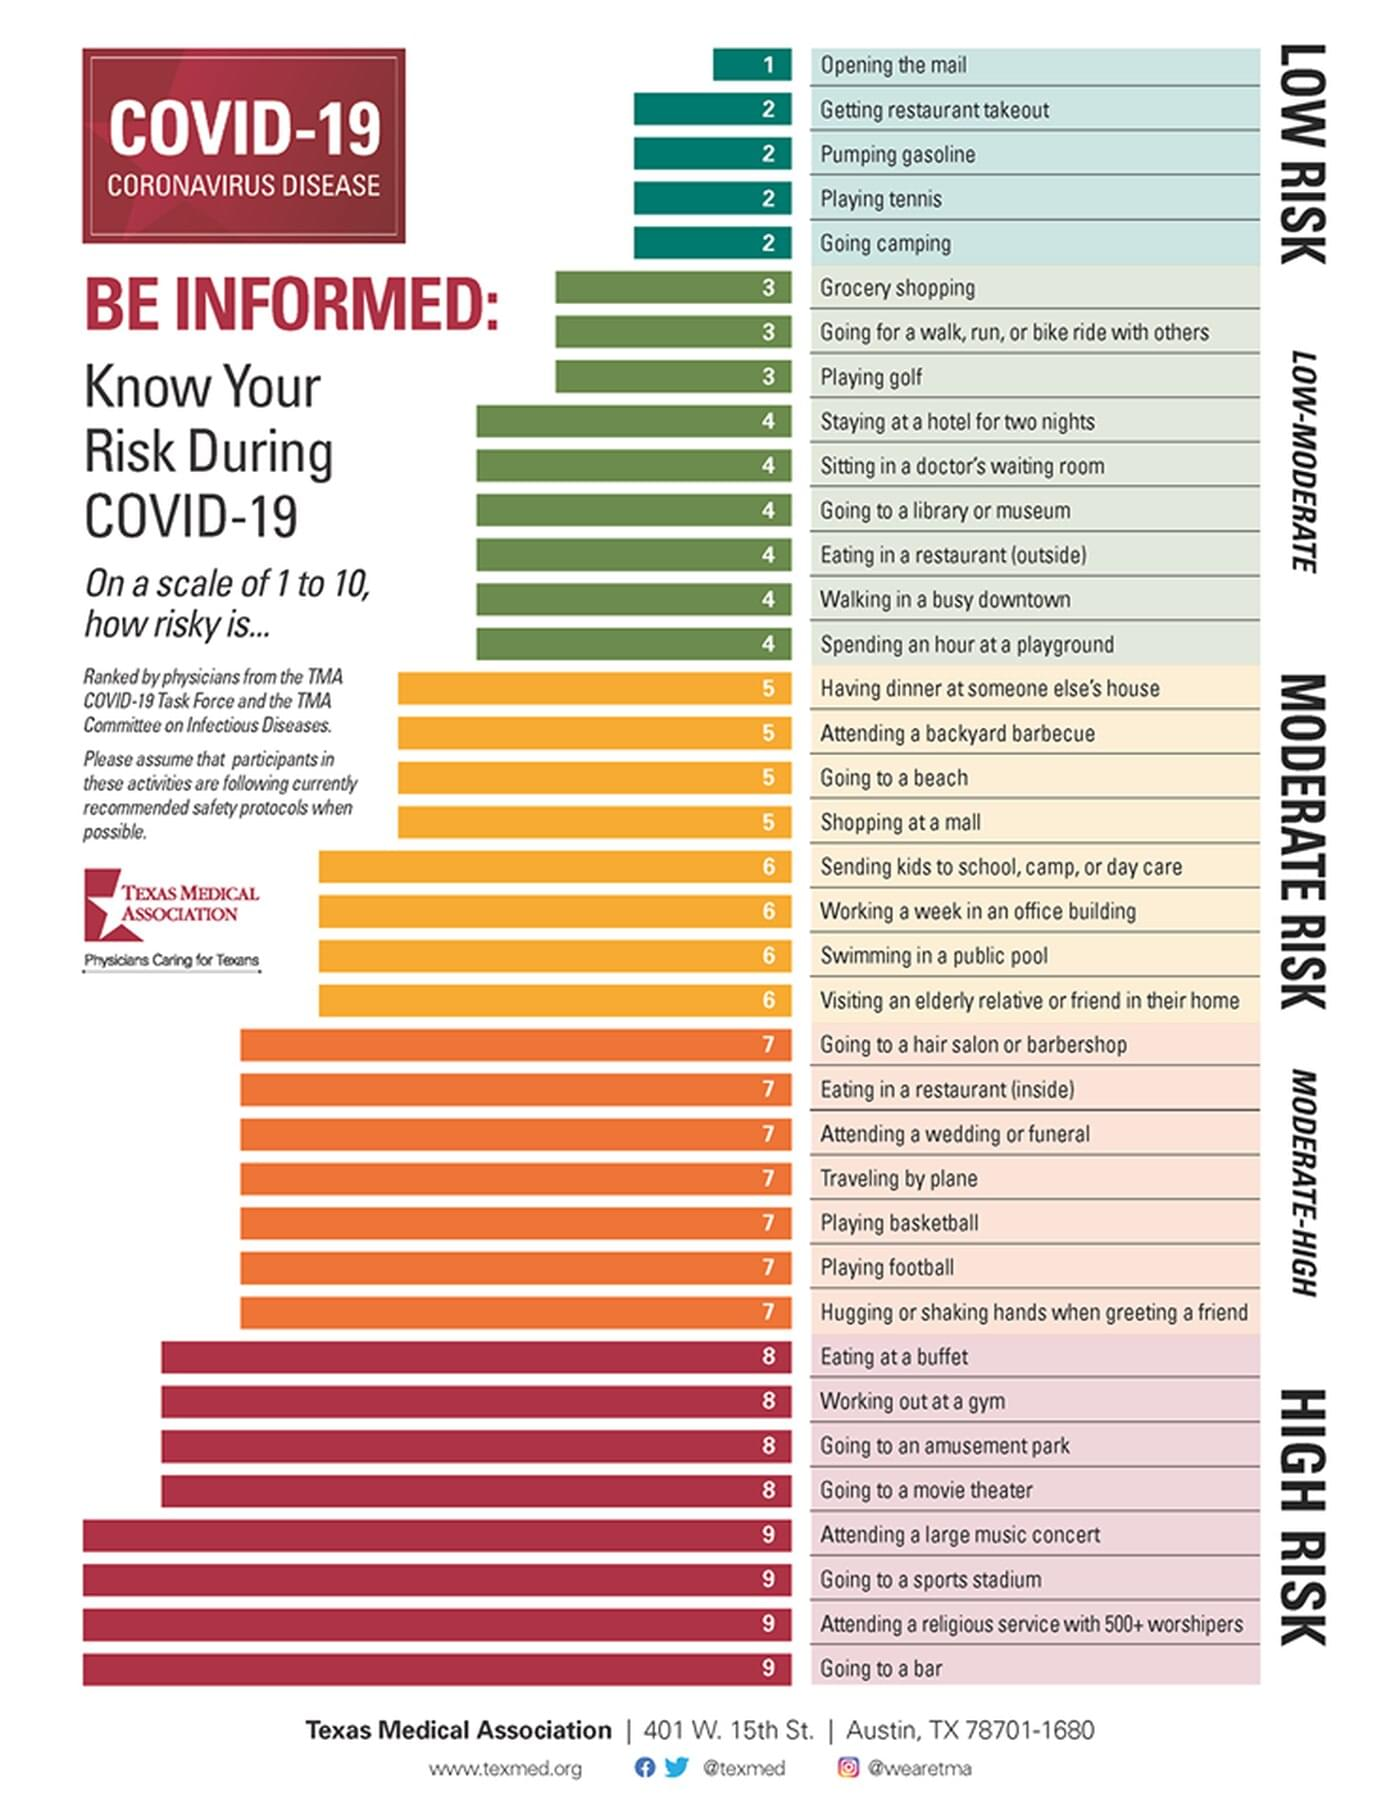 COVID19 Risks ranks from lowest to highest